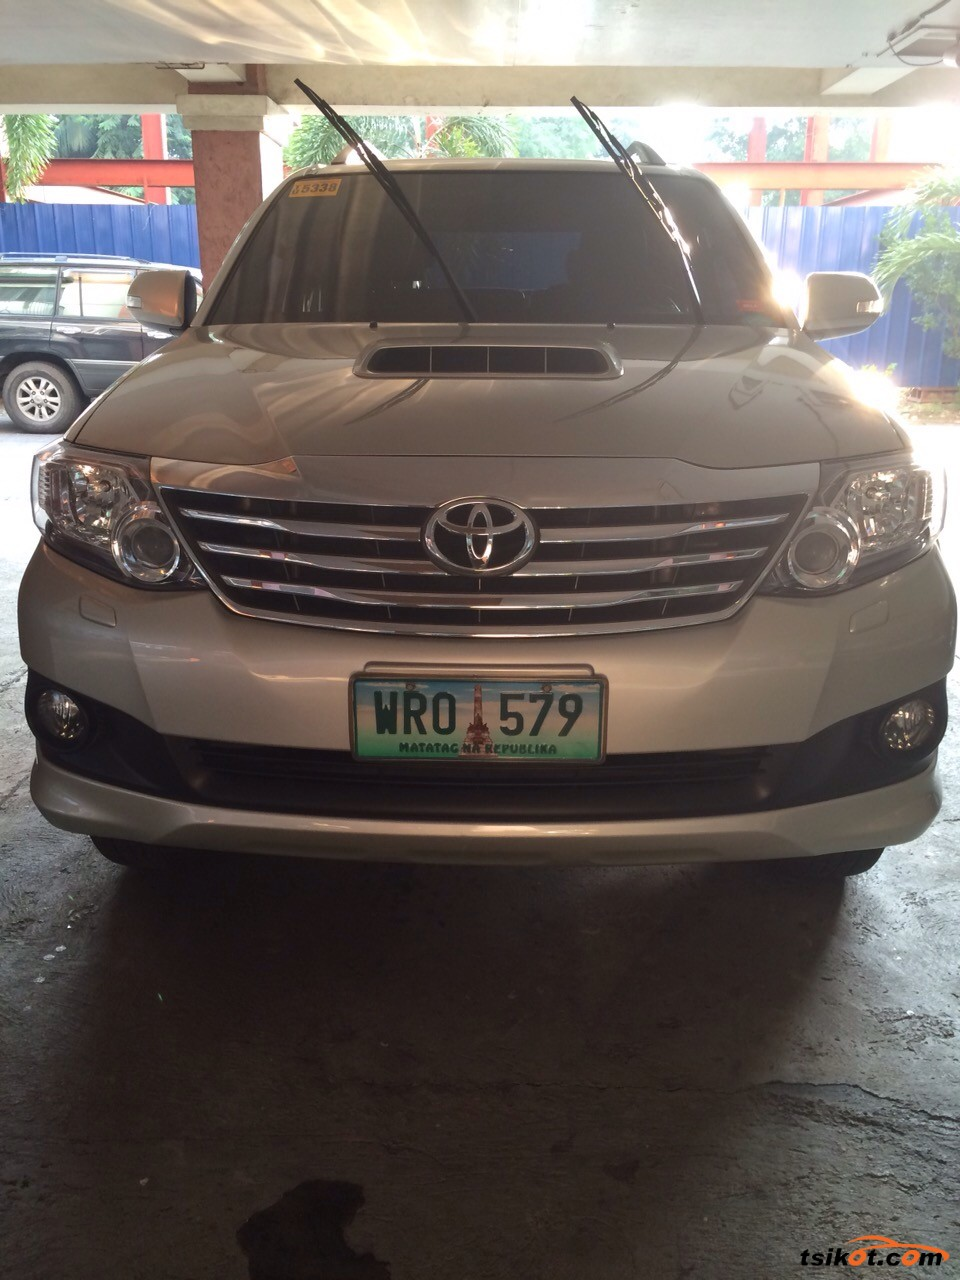 cars_13117_toyota_fortuner_2013_13117_1